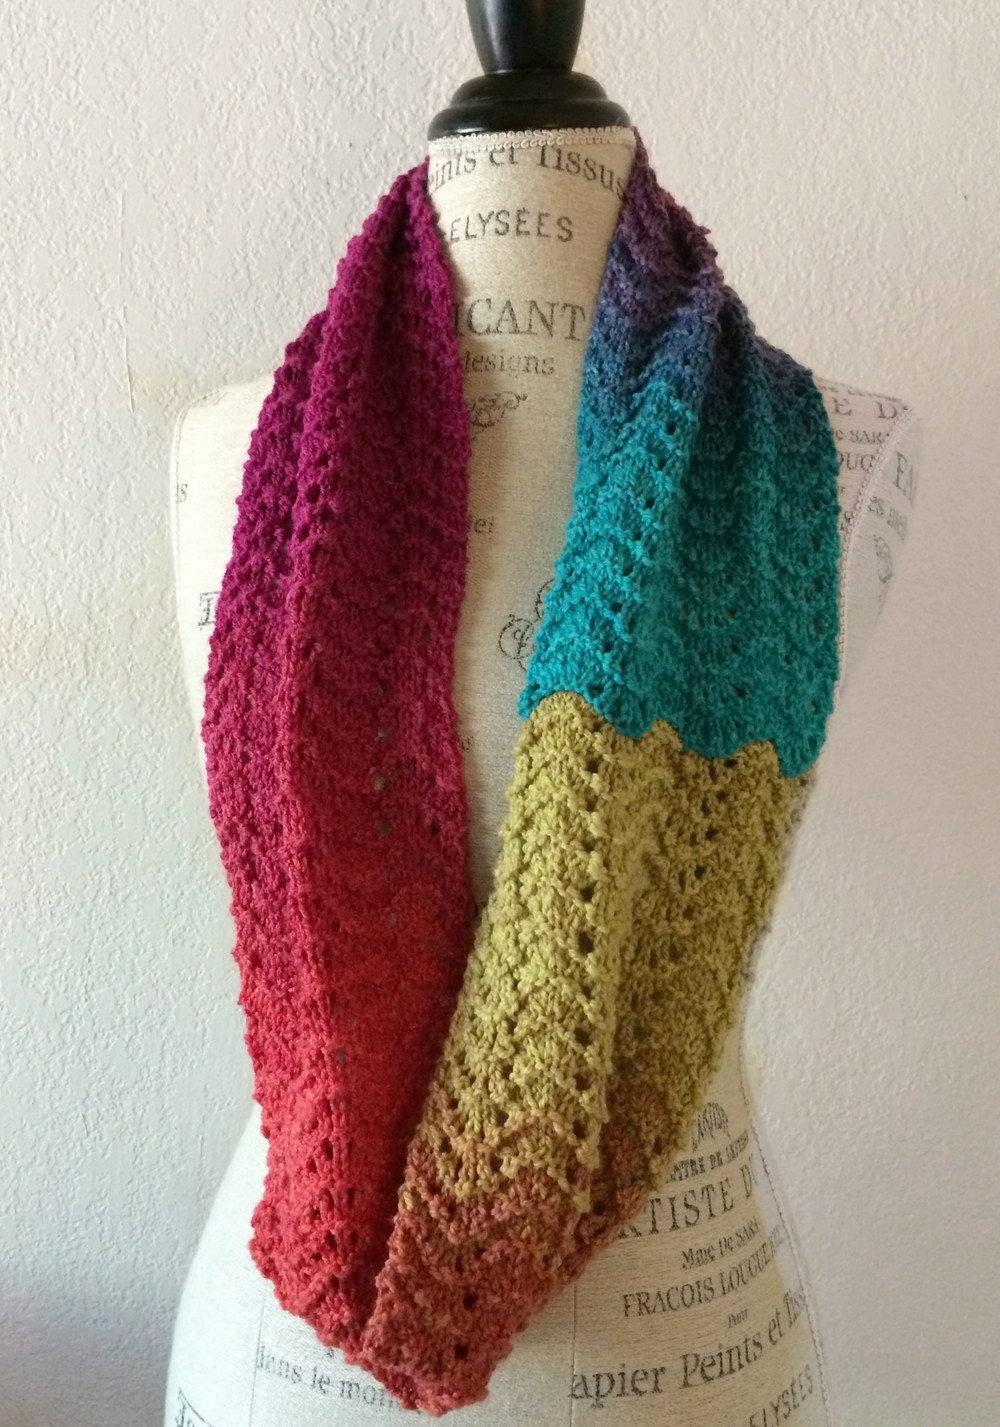 Awesome Calistoga Cowl Free Knitting Pattern — Blog Nobleknits Free Knitted Cowl Patterns Of Incredible 45 Images Free Knitted Cowl Patterns